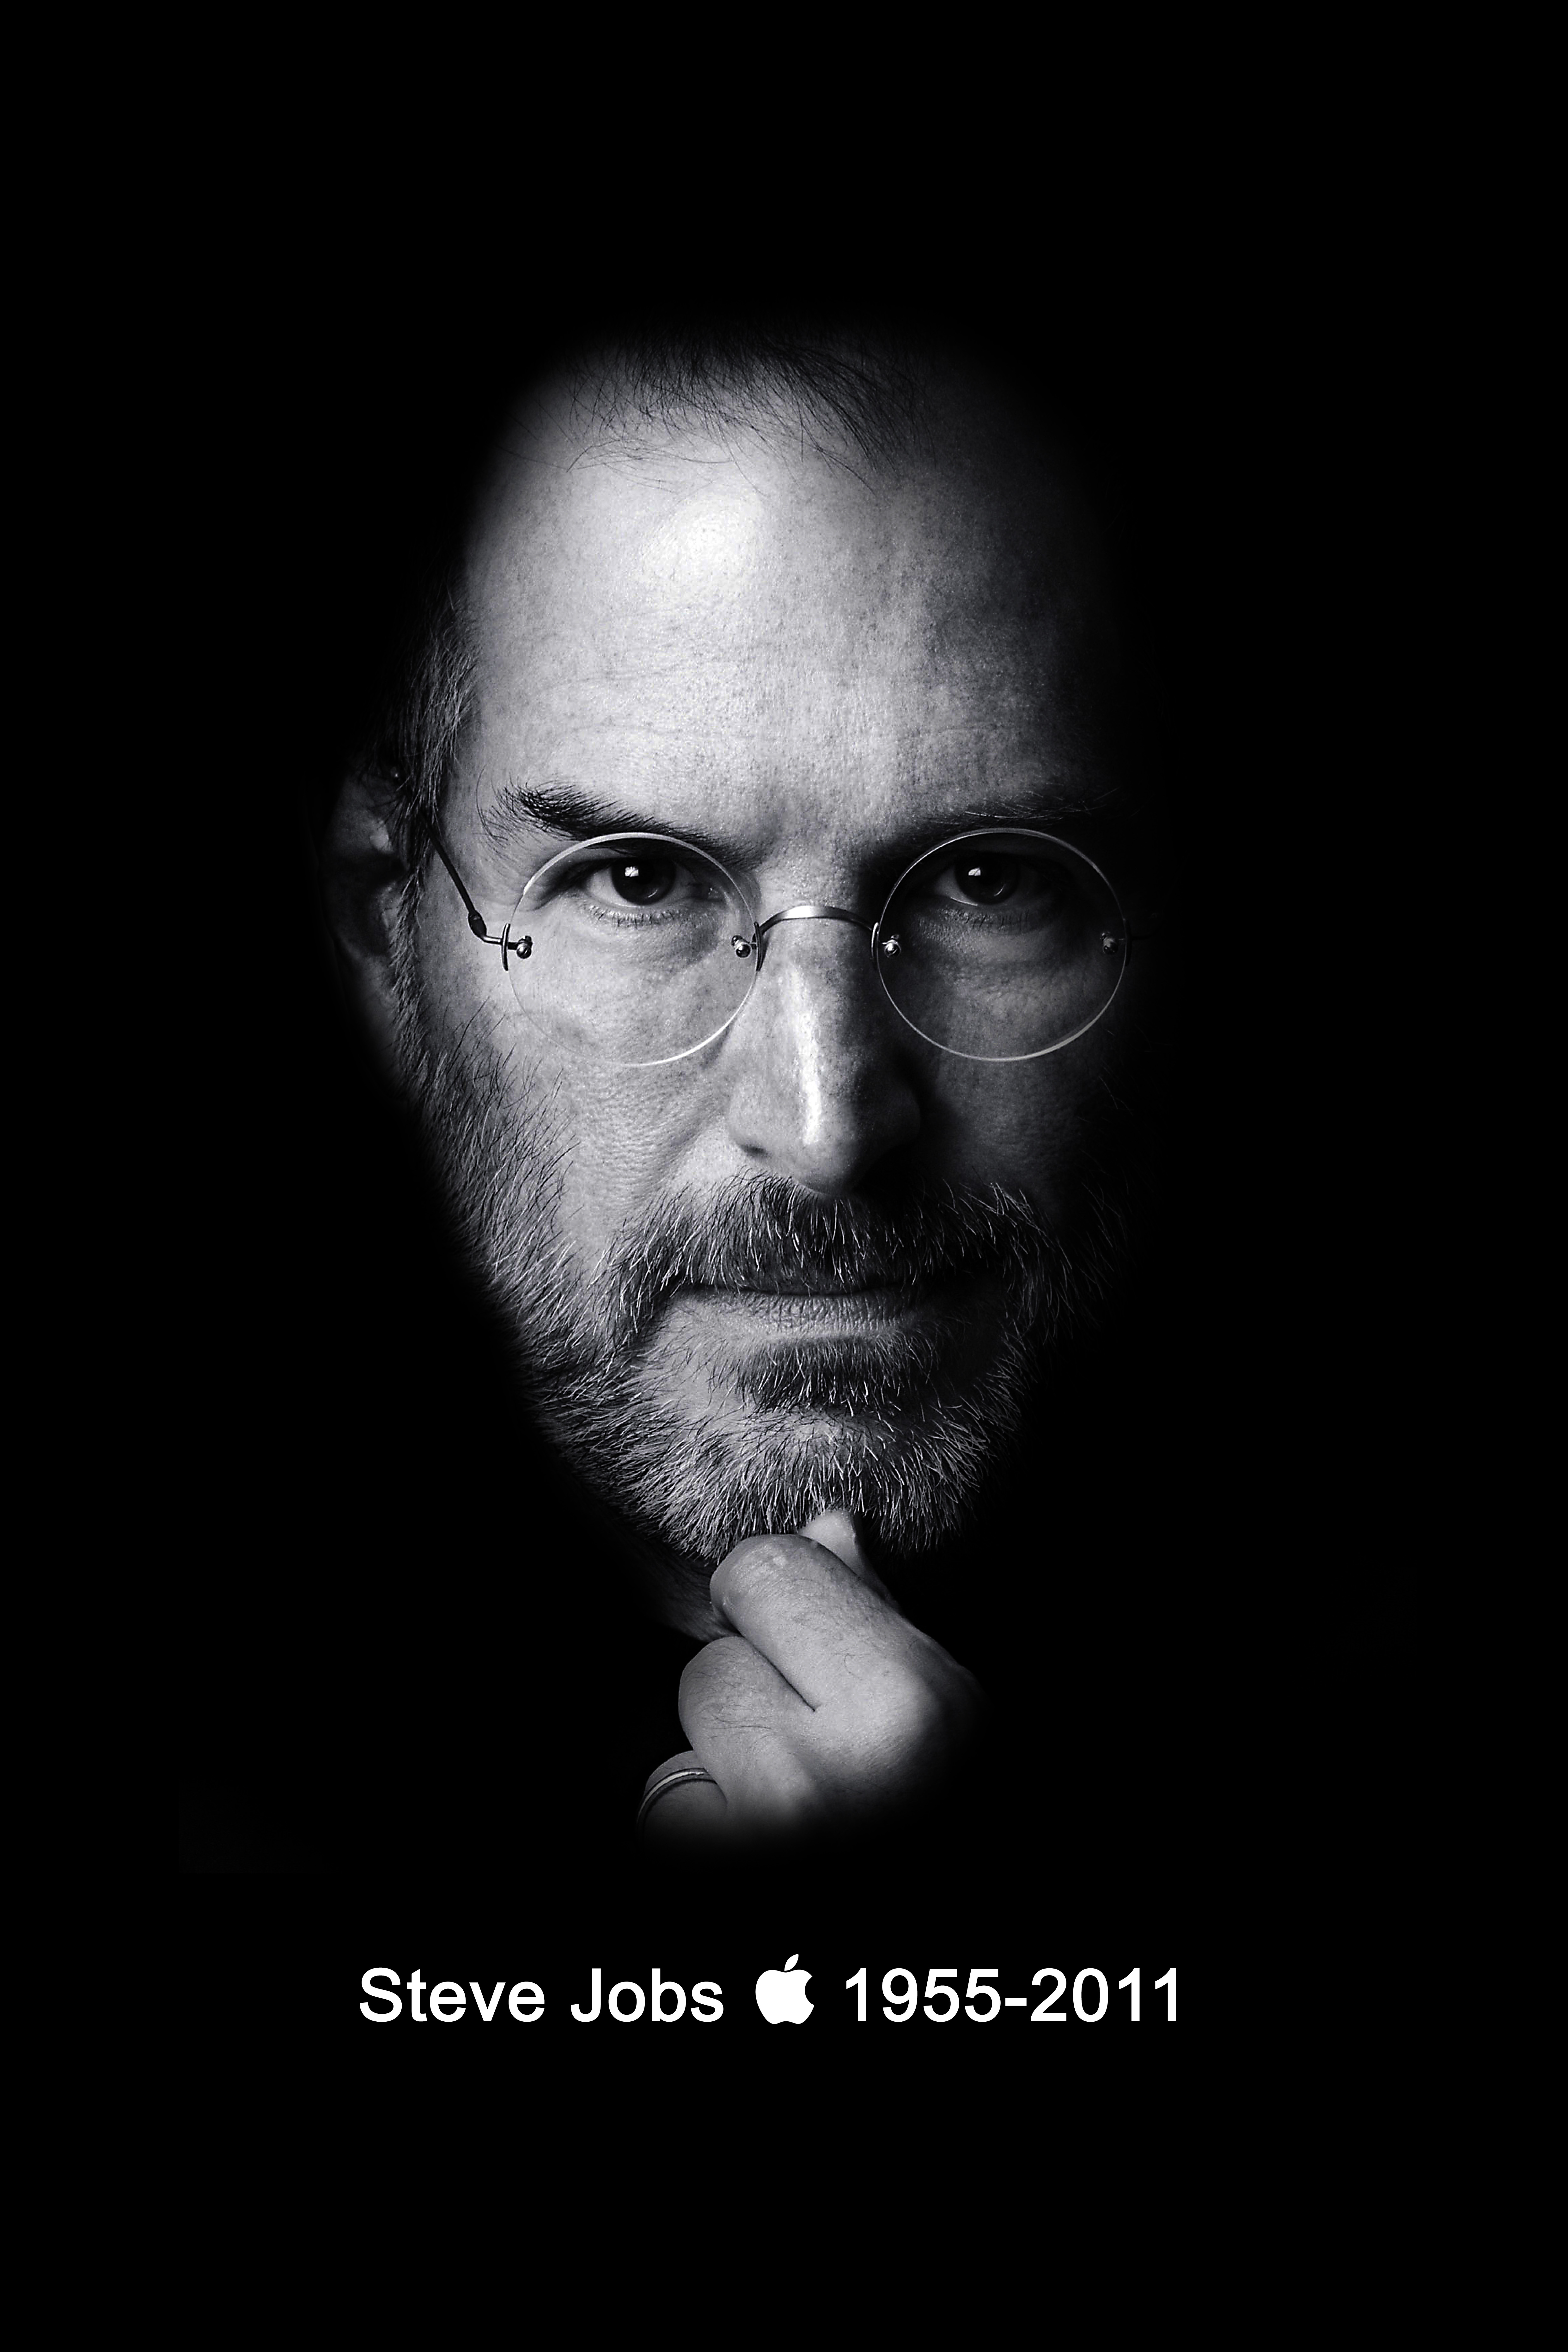 Steve Jobs Libro About Living In A Digital World